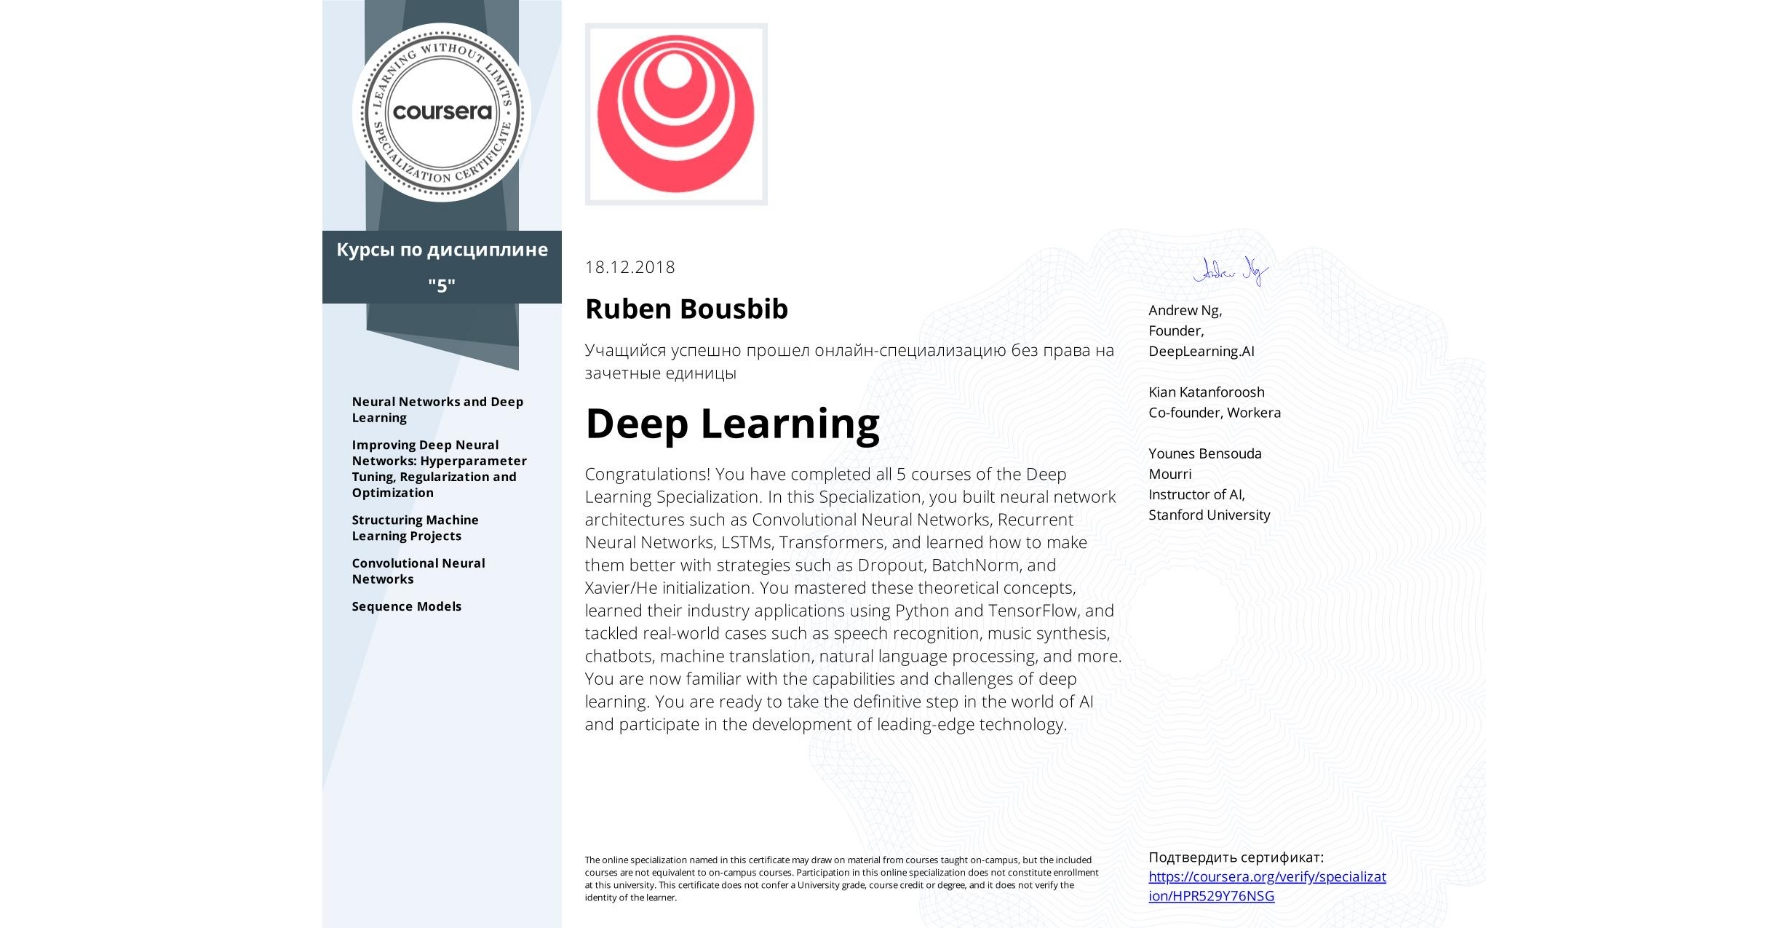 View certificate for Ruben Bousbib, Deep Learning, offered through Coursera. The Deep Learning Specialization is designed to prepare learners to participate in the development of cutting-edge AI technology, and to understand the capability, the challenges, and the consequences of the rise of deep learning. Through five interconnected courses, learners develop a profound knowledge of the hottest AI algorithms, mastering deep learning from its foundations (neural networks) to its industry applications (Computer Vision, Natural Language Processing, Speech Recognition, etc.).